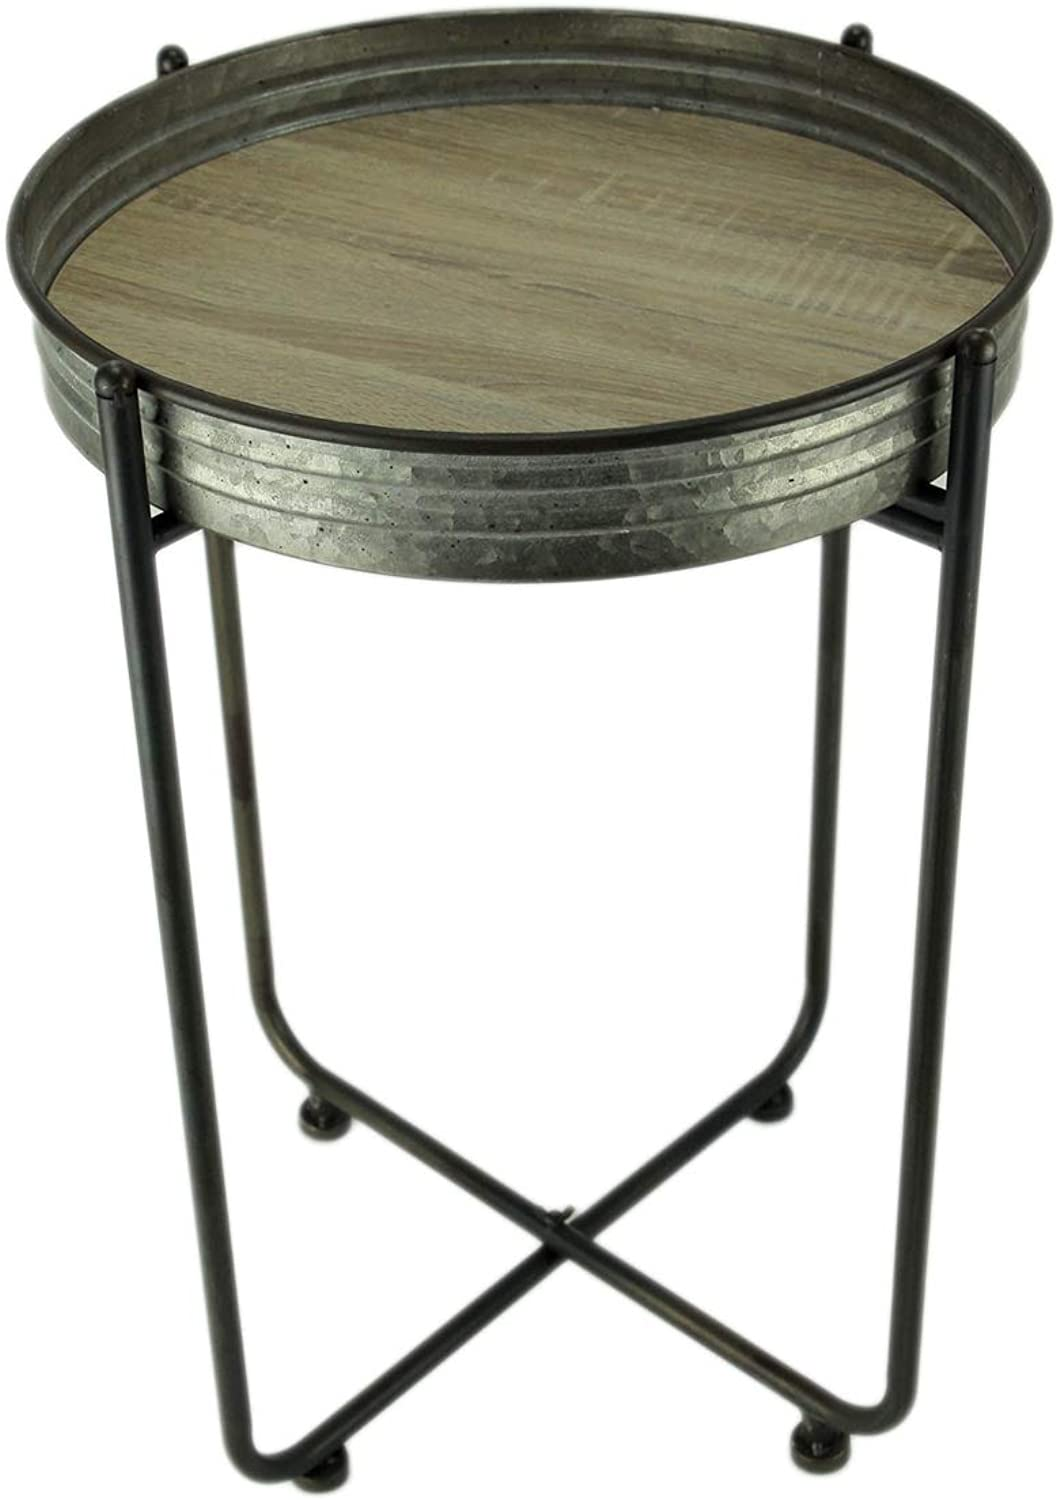 Rustic Galvanized Metal and Wood Round Accent Table